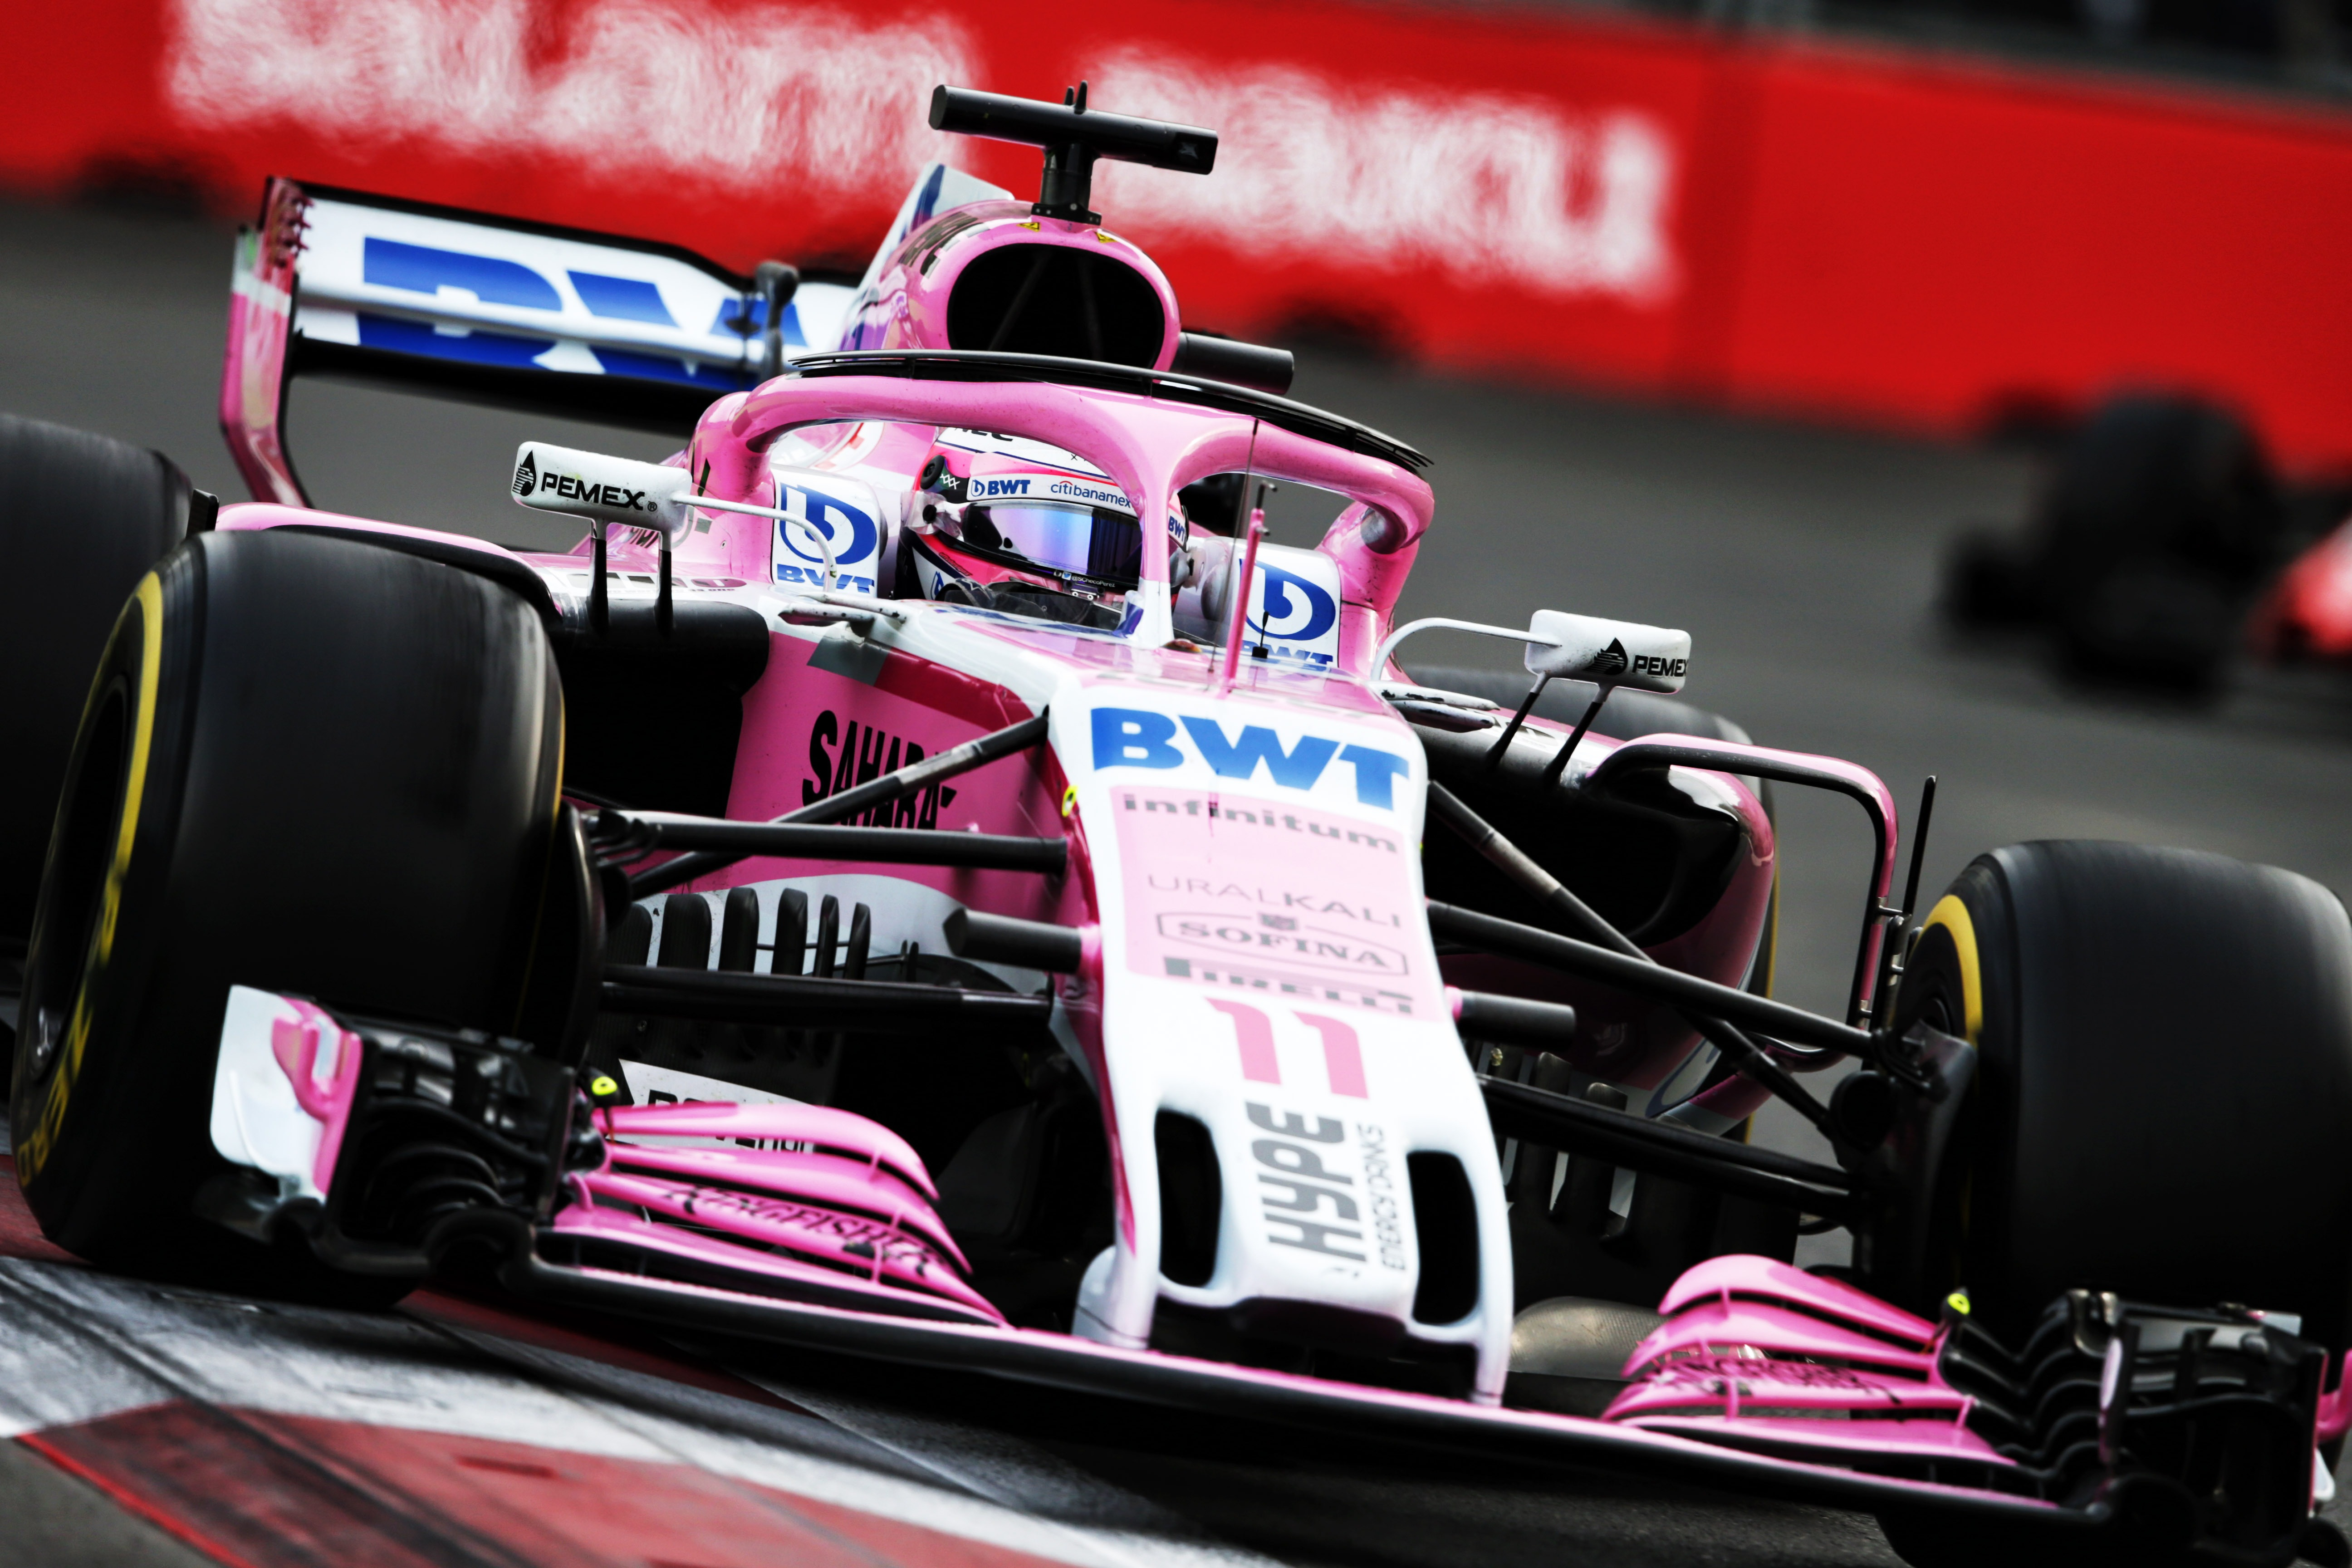 Force India not confirming end of pink livery